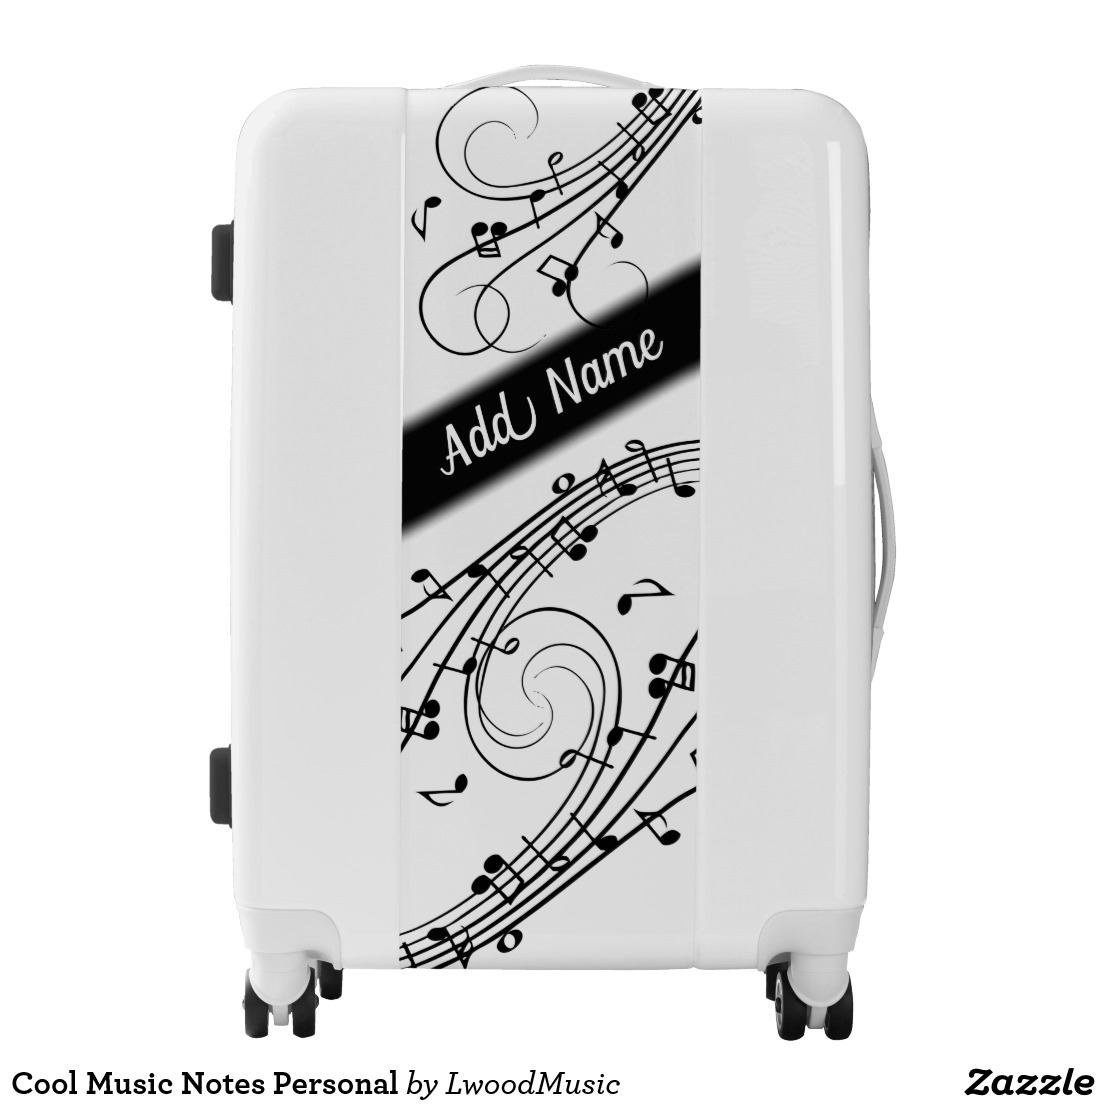 Cool Music Notes Personal Luggage